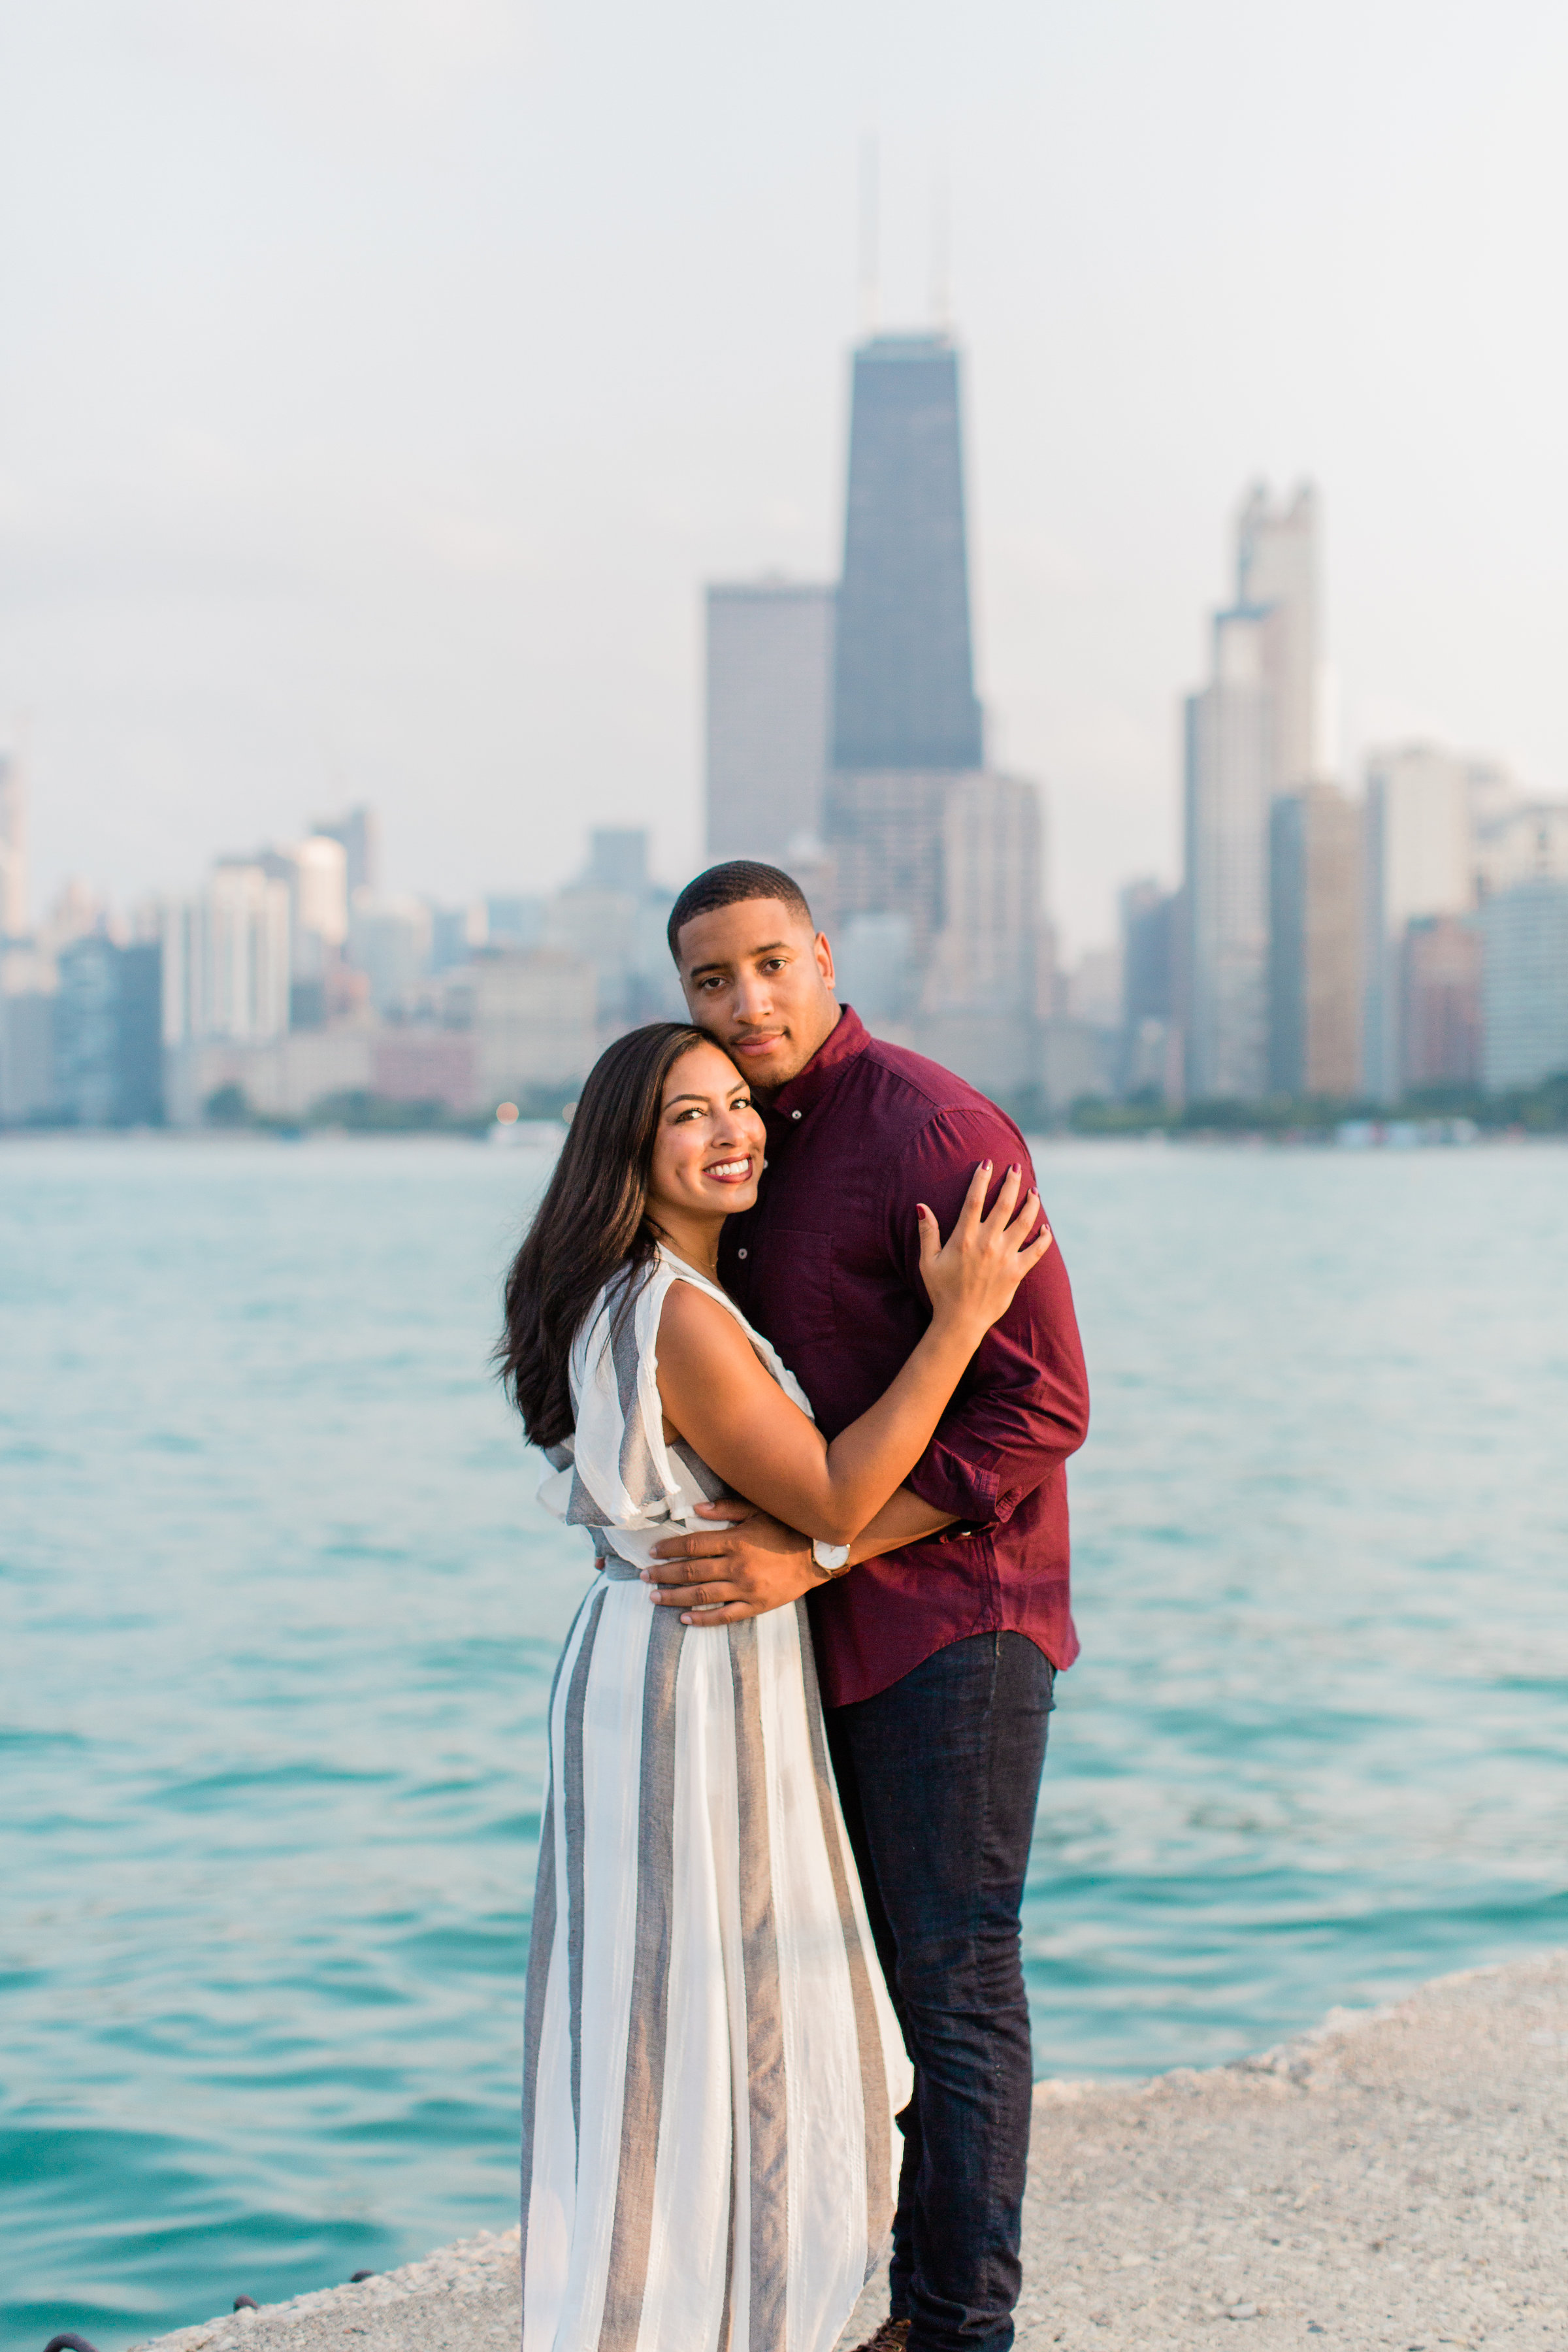 Lincoln Park Engagement Session Photography by Lauryn (21)